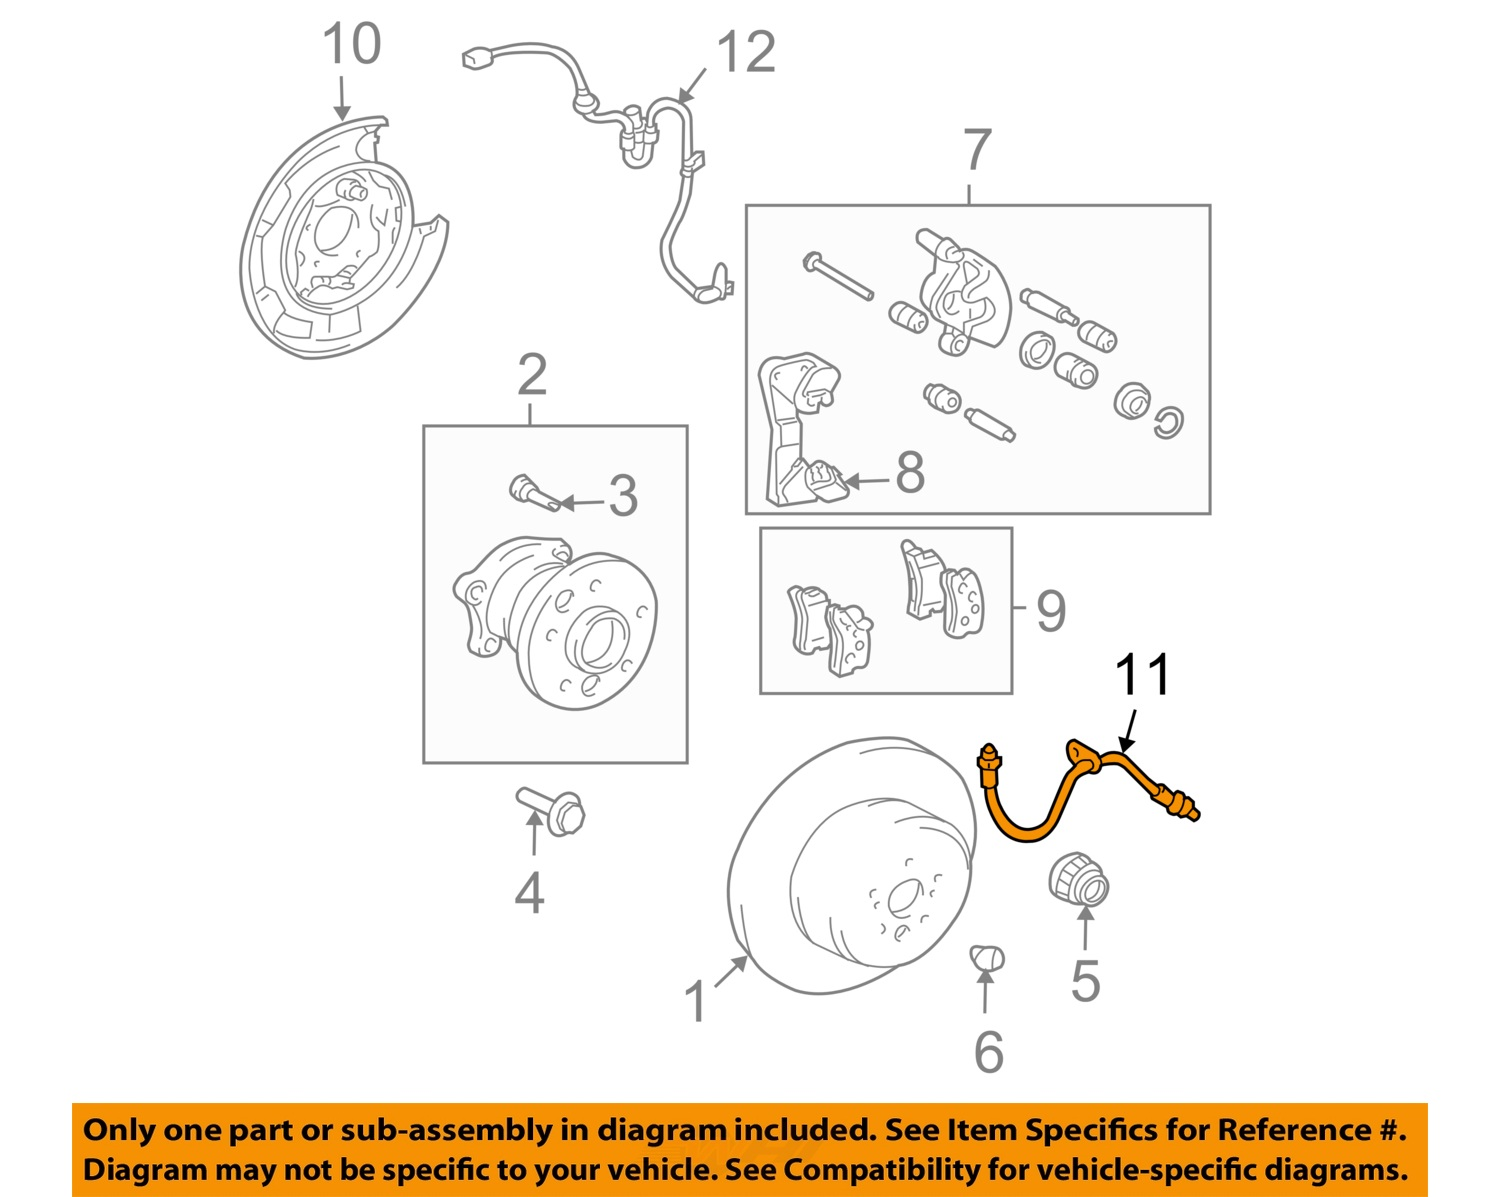 lexus rx300 exhaust system diagram 2006 crf50 wiring 2005 rx330 parts hoses auto